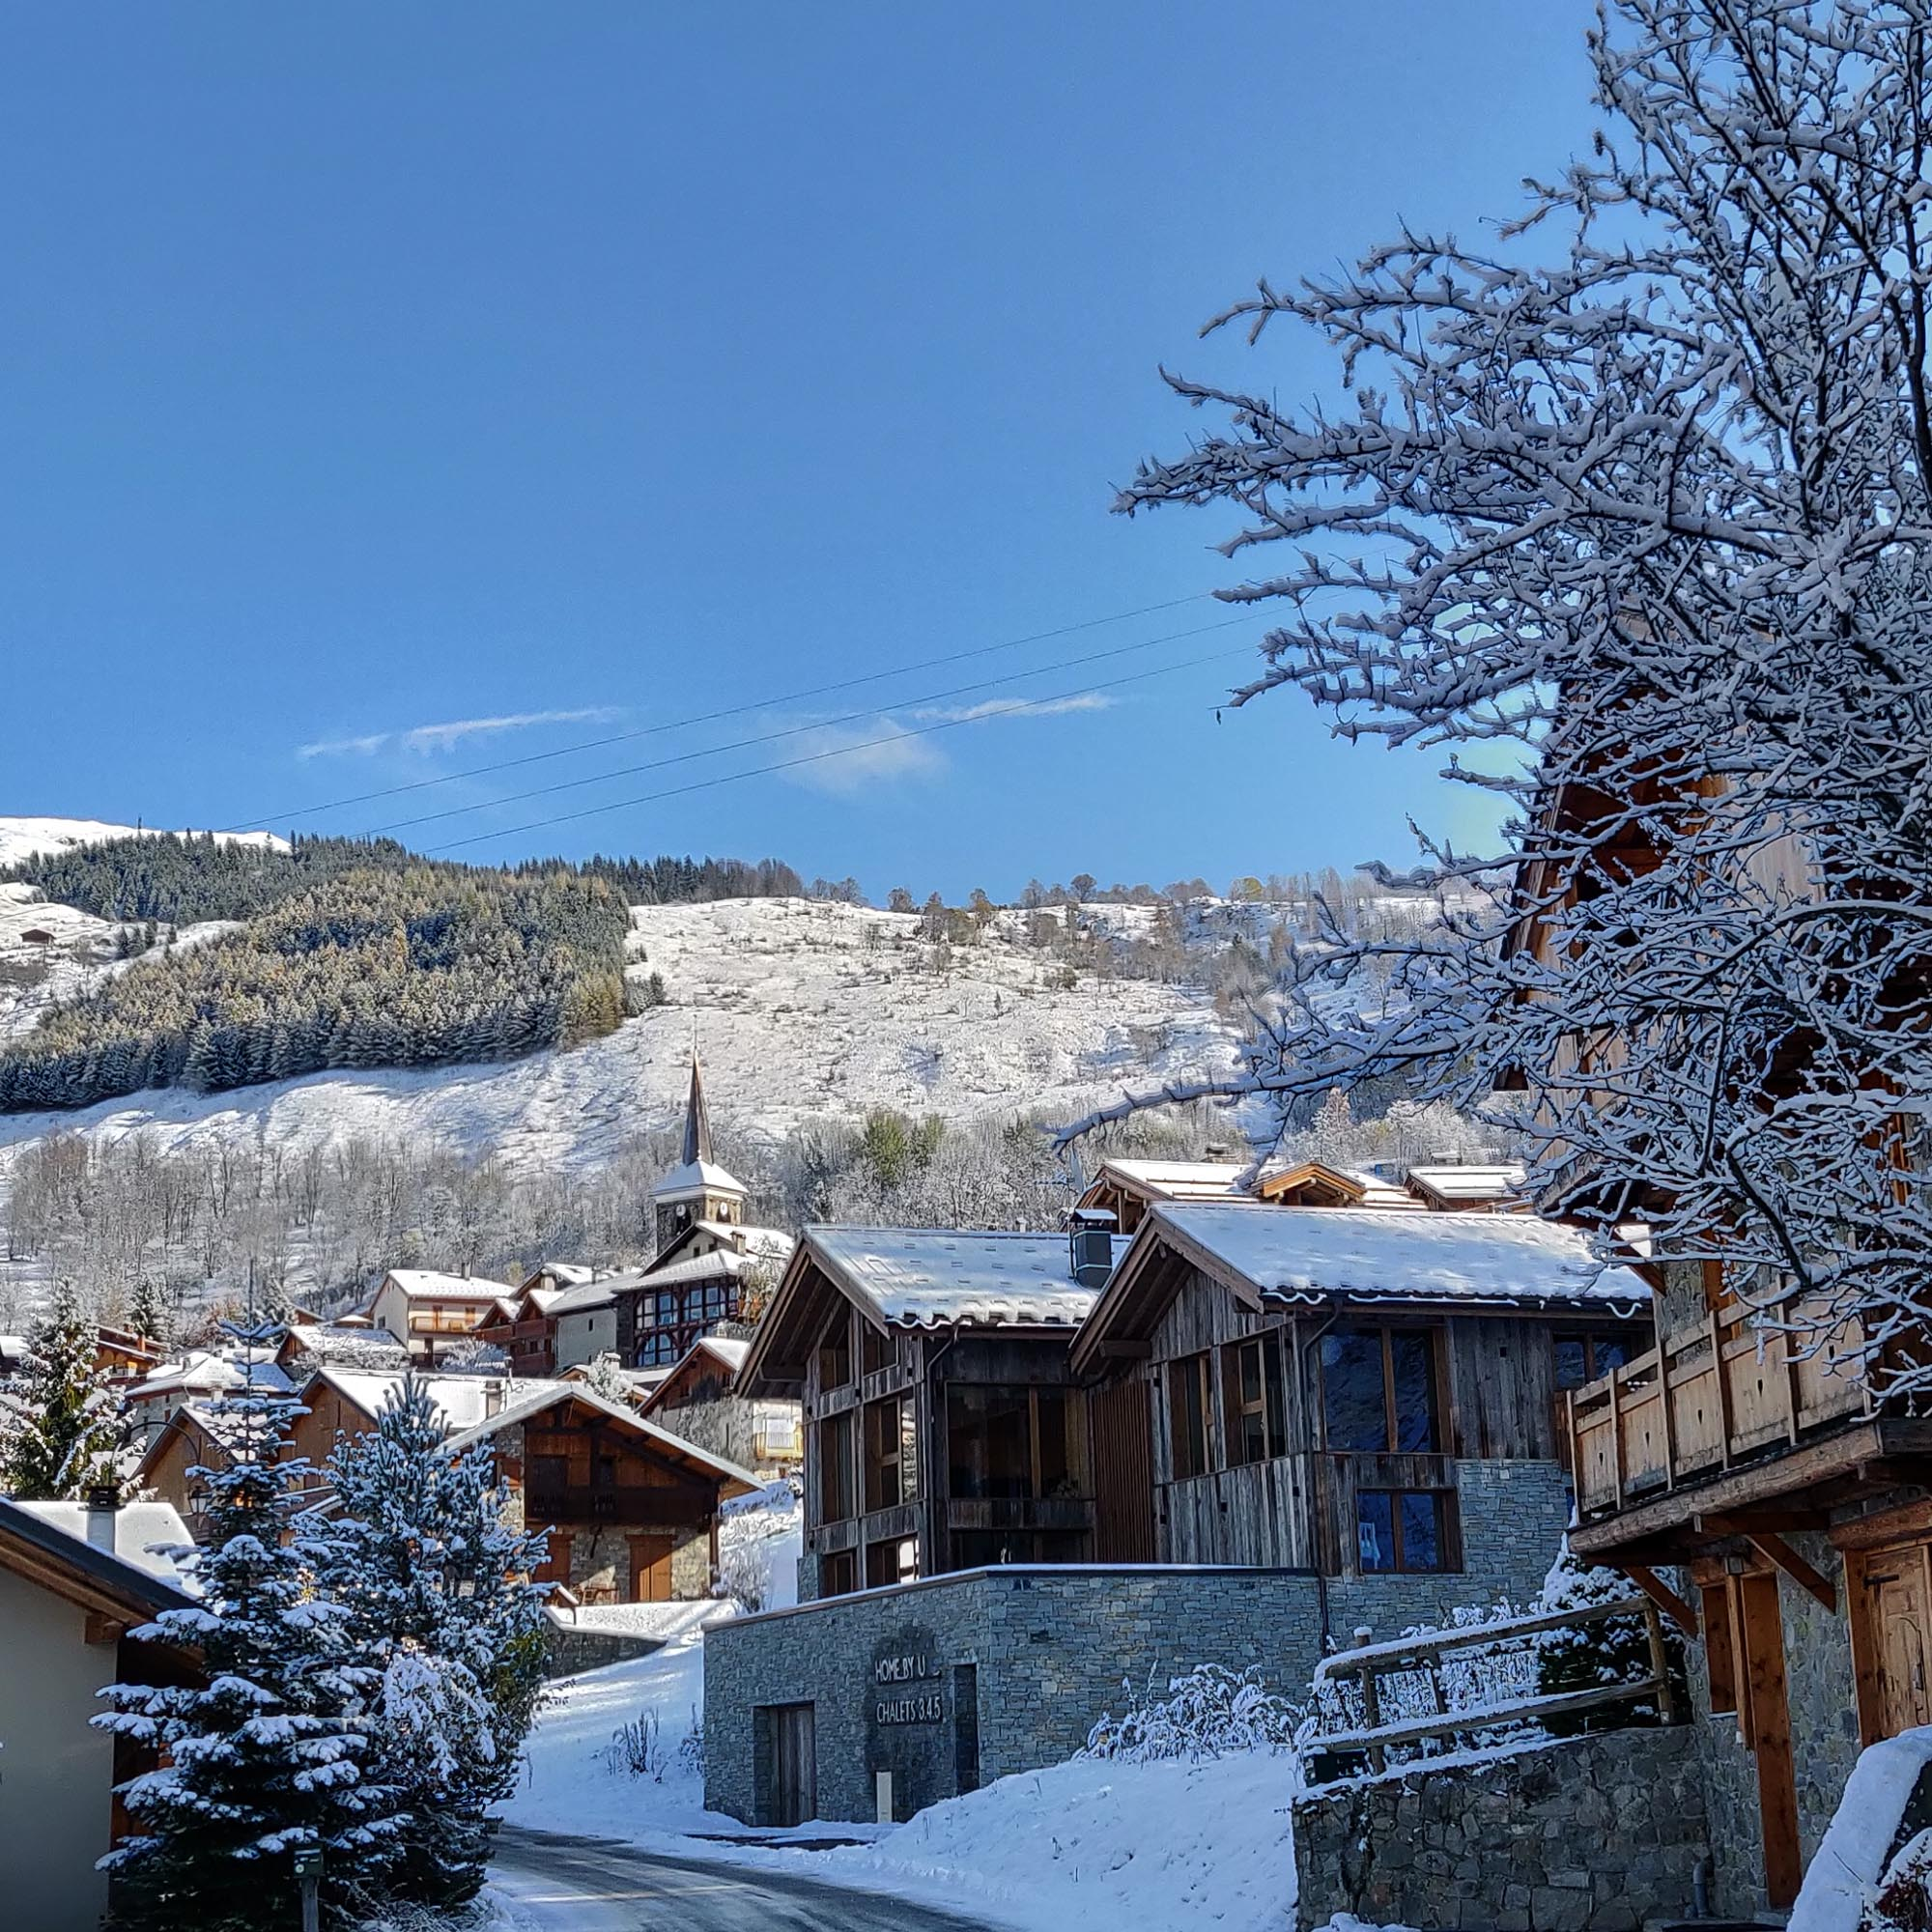 Saint Martin de Belleville ski village has plenty of non skiing activities